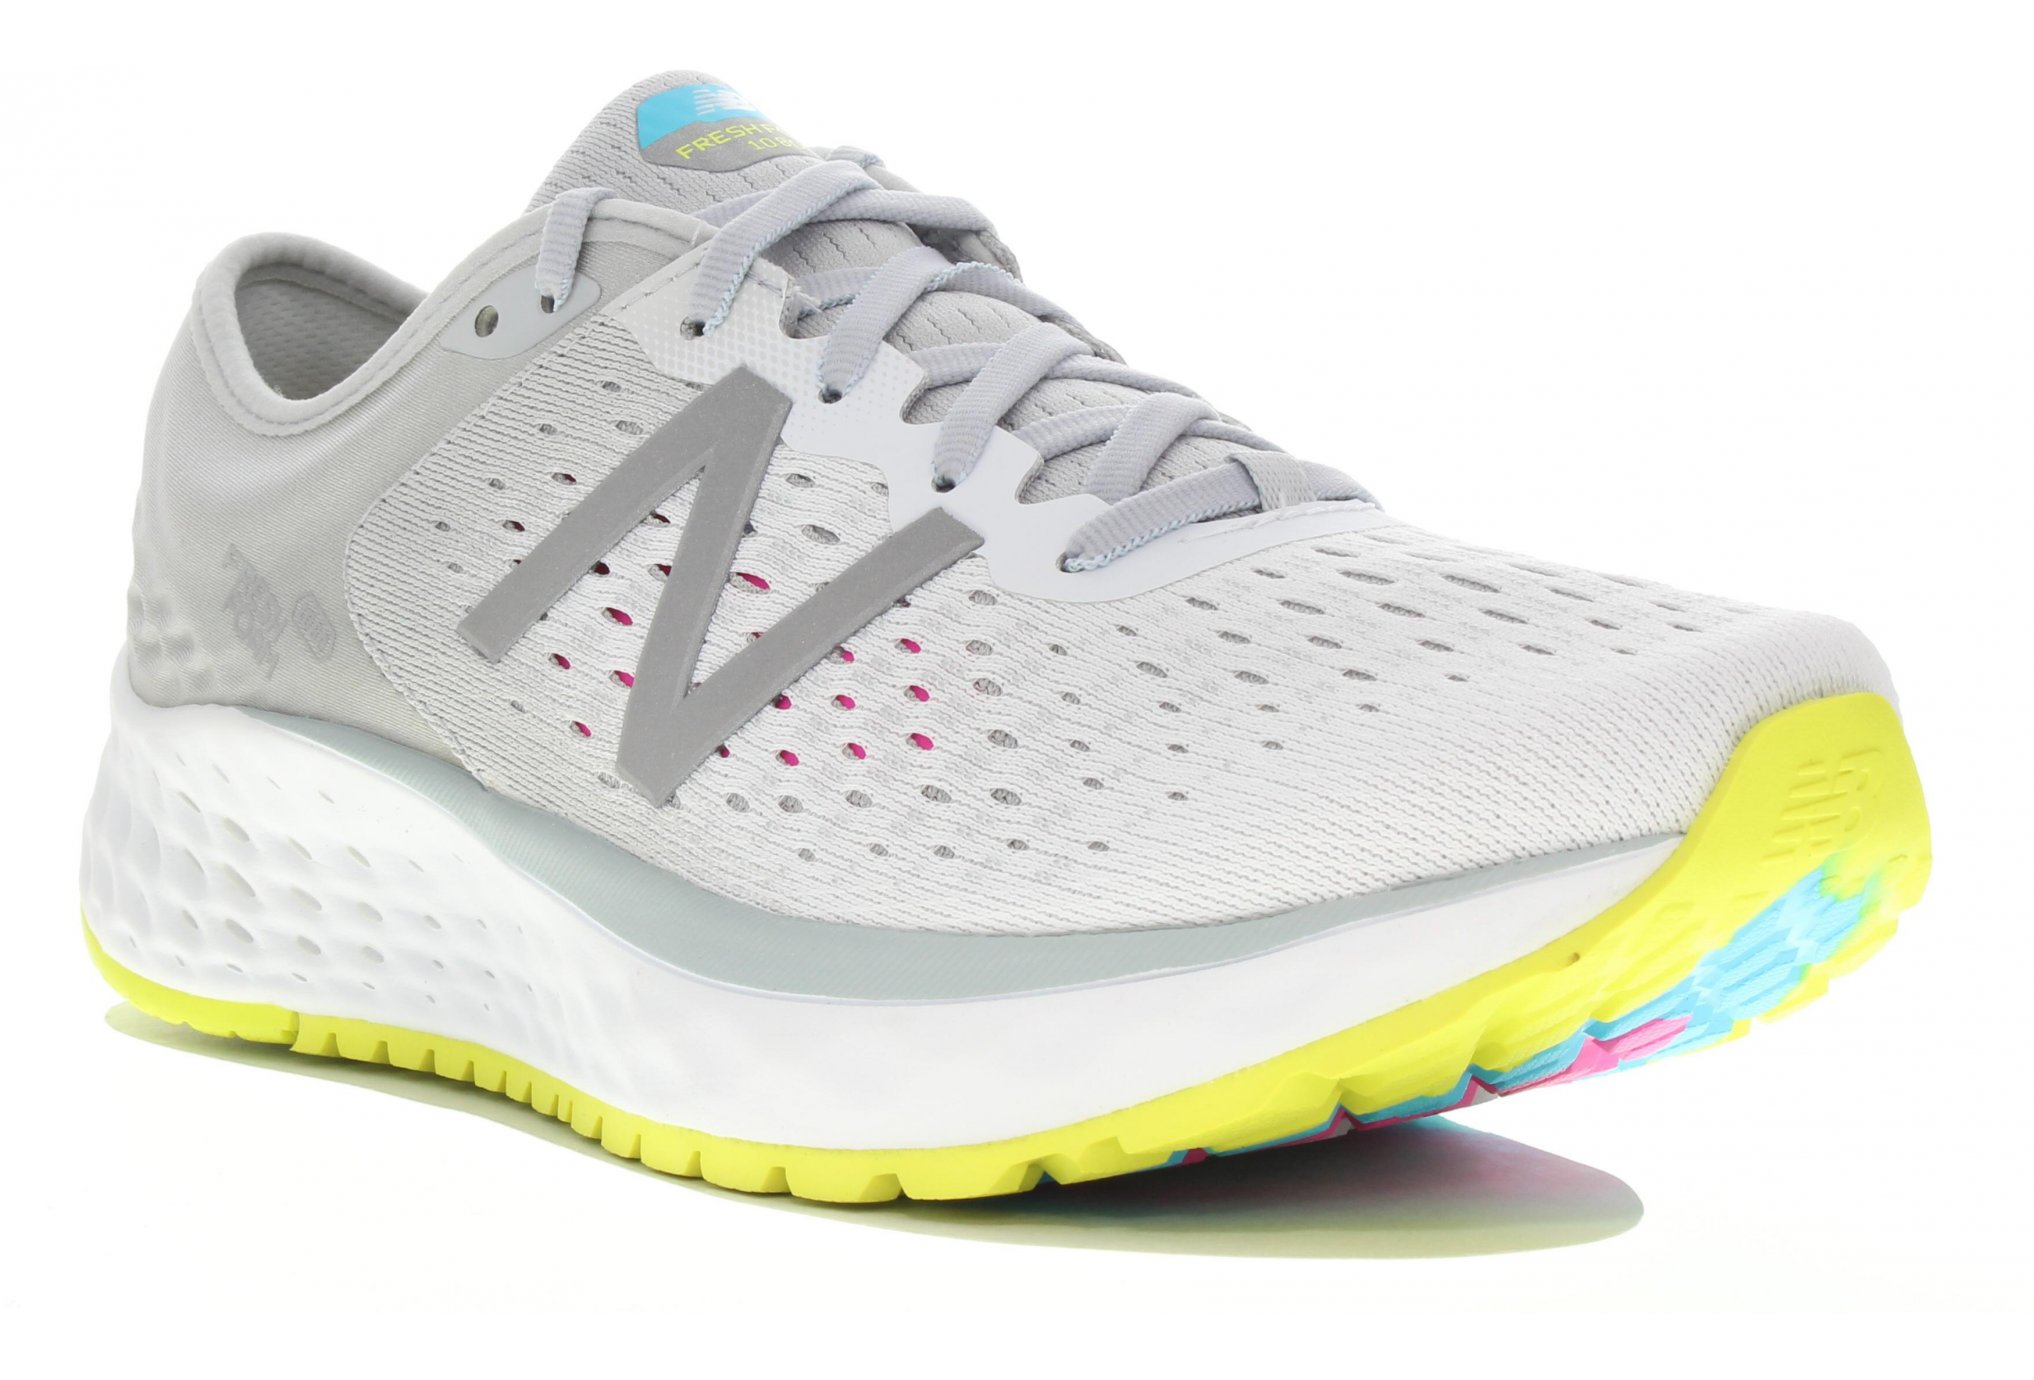 New Balance Fresh Foam 1080 V9 - B Chaussures running femme